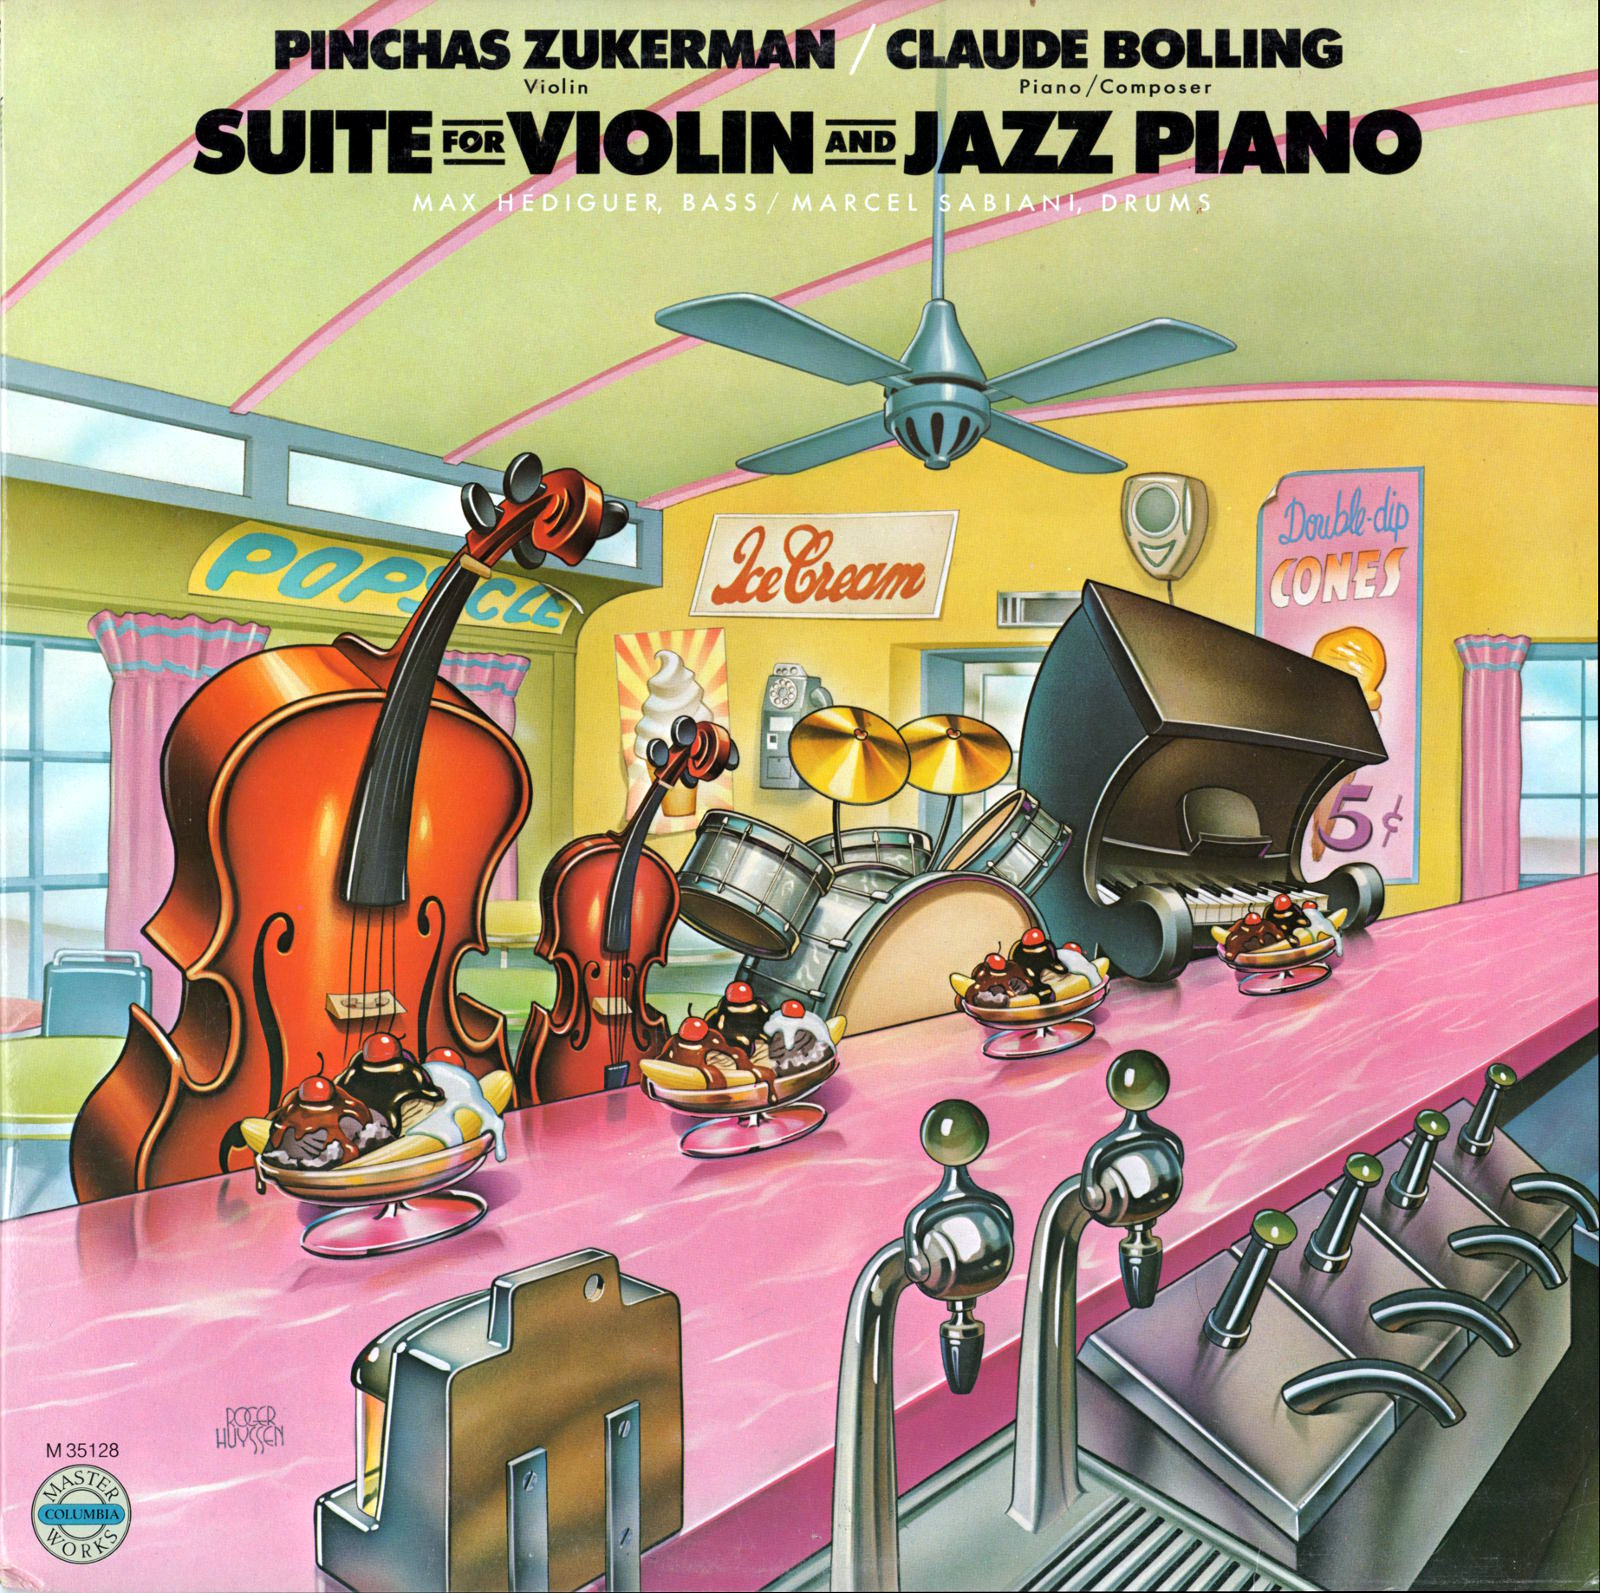 roger-huyssen_suite-for-violin-and-jazz-piano_cbs-1978_m35128